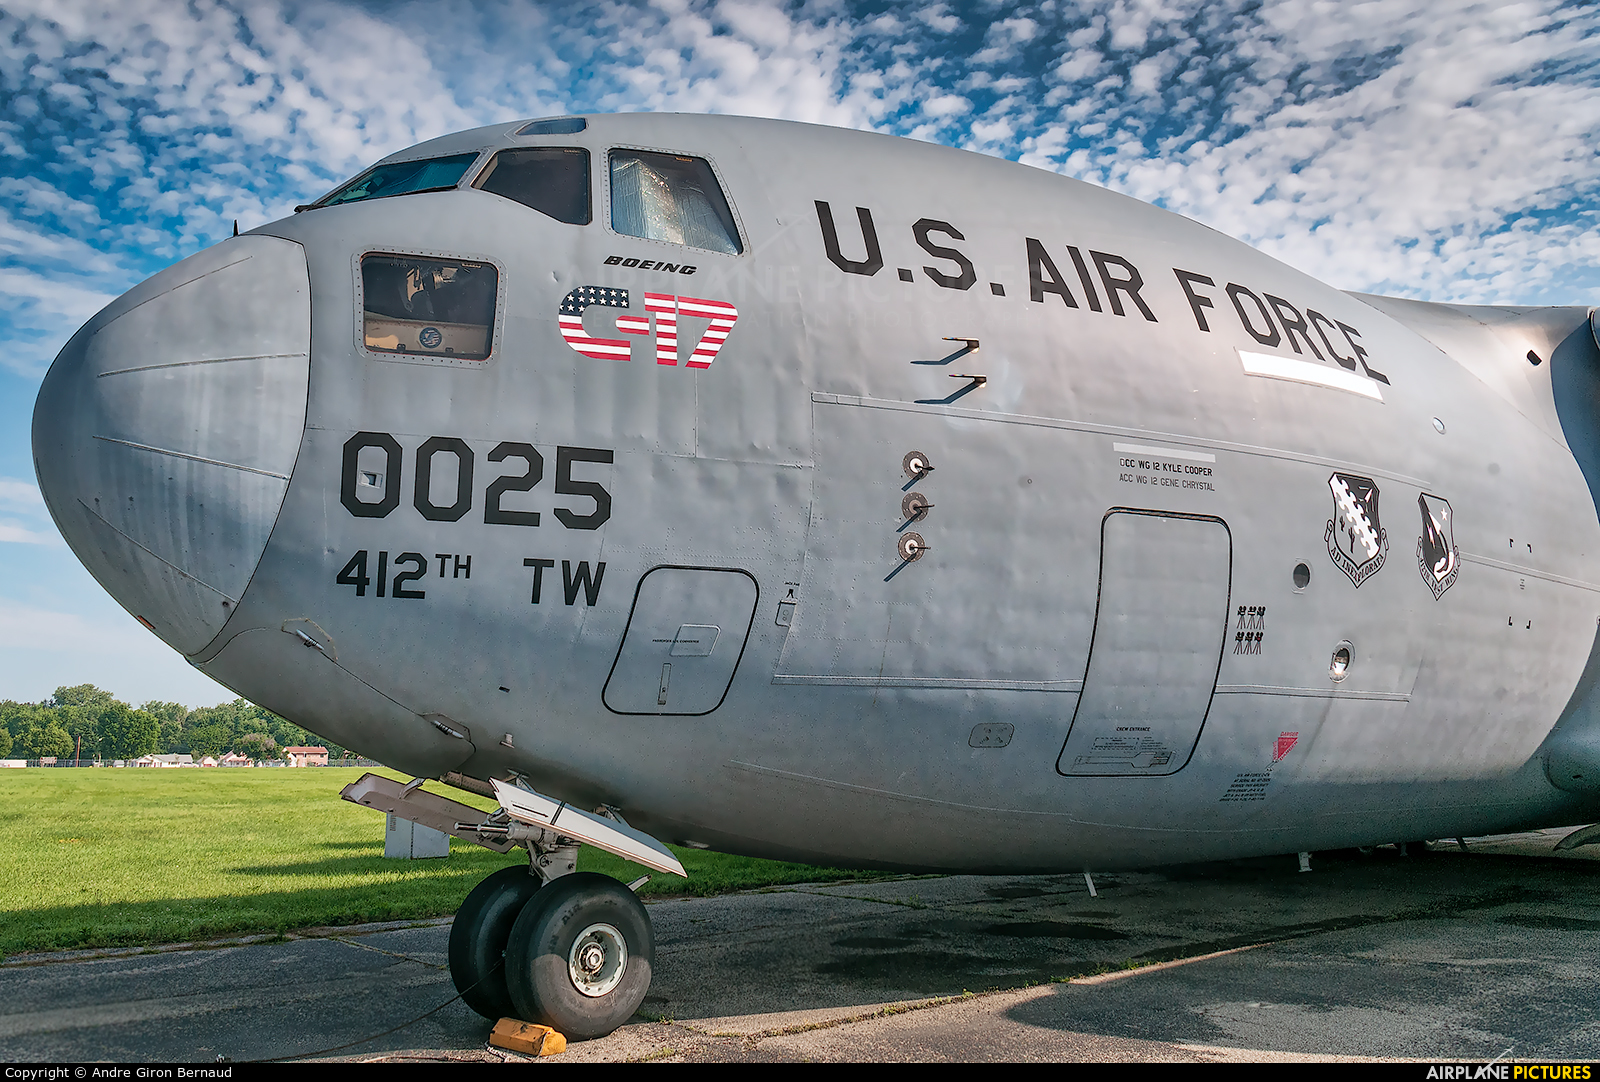 USA - Air Force 87-0025 aircraft at Wright-Patterson Air Force Base